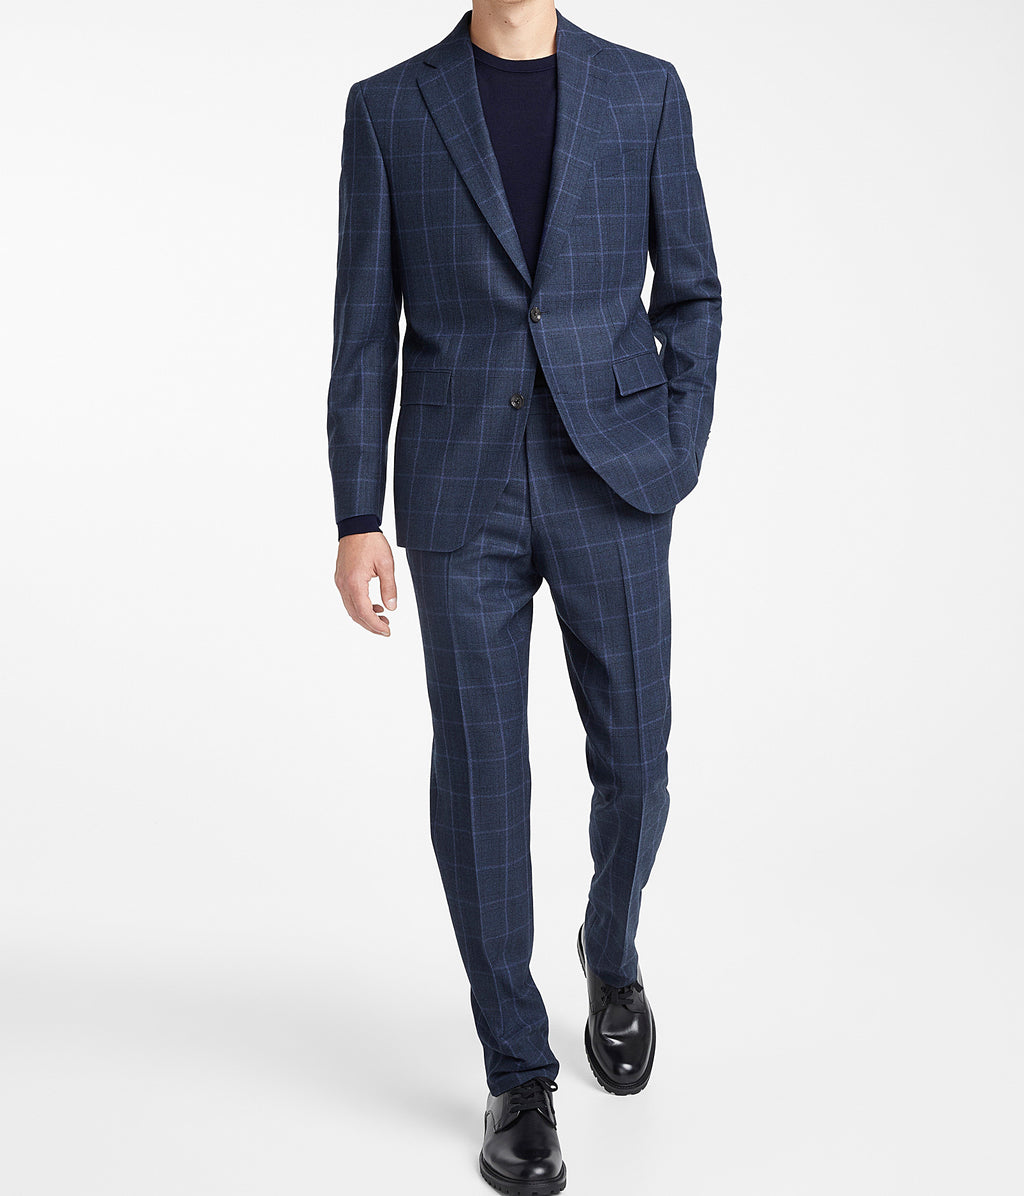 Blue Check - Midland - Modern Fit